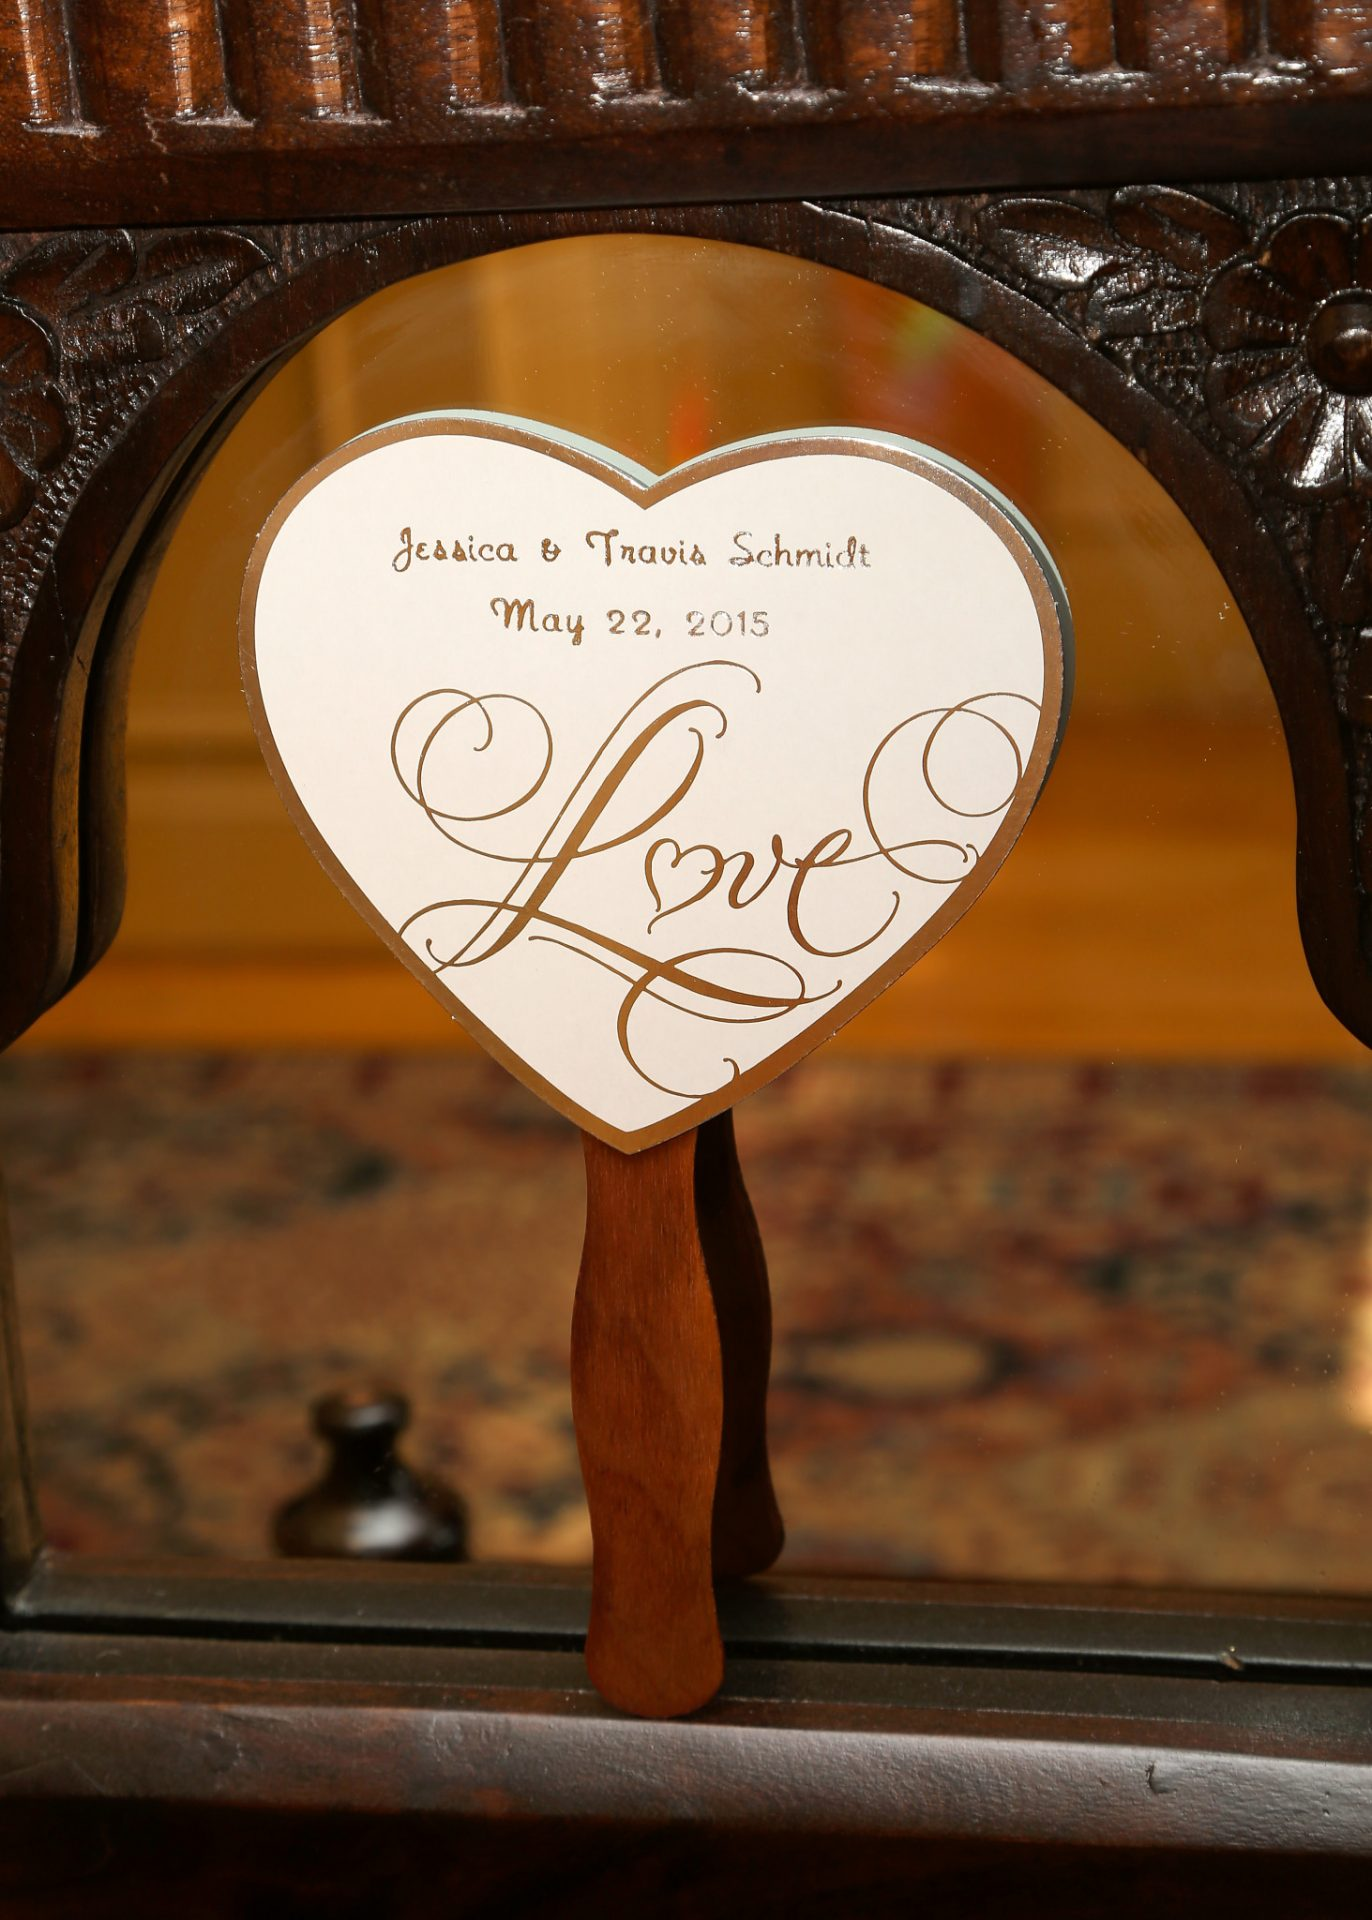 heart shaped fan used during outside wedding ceremony